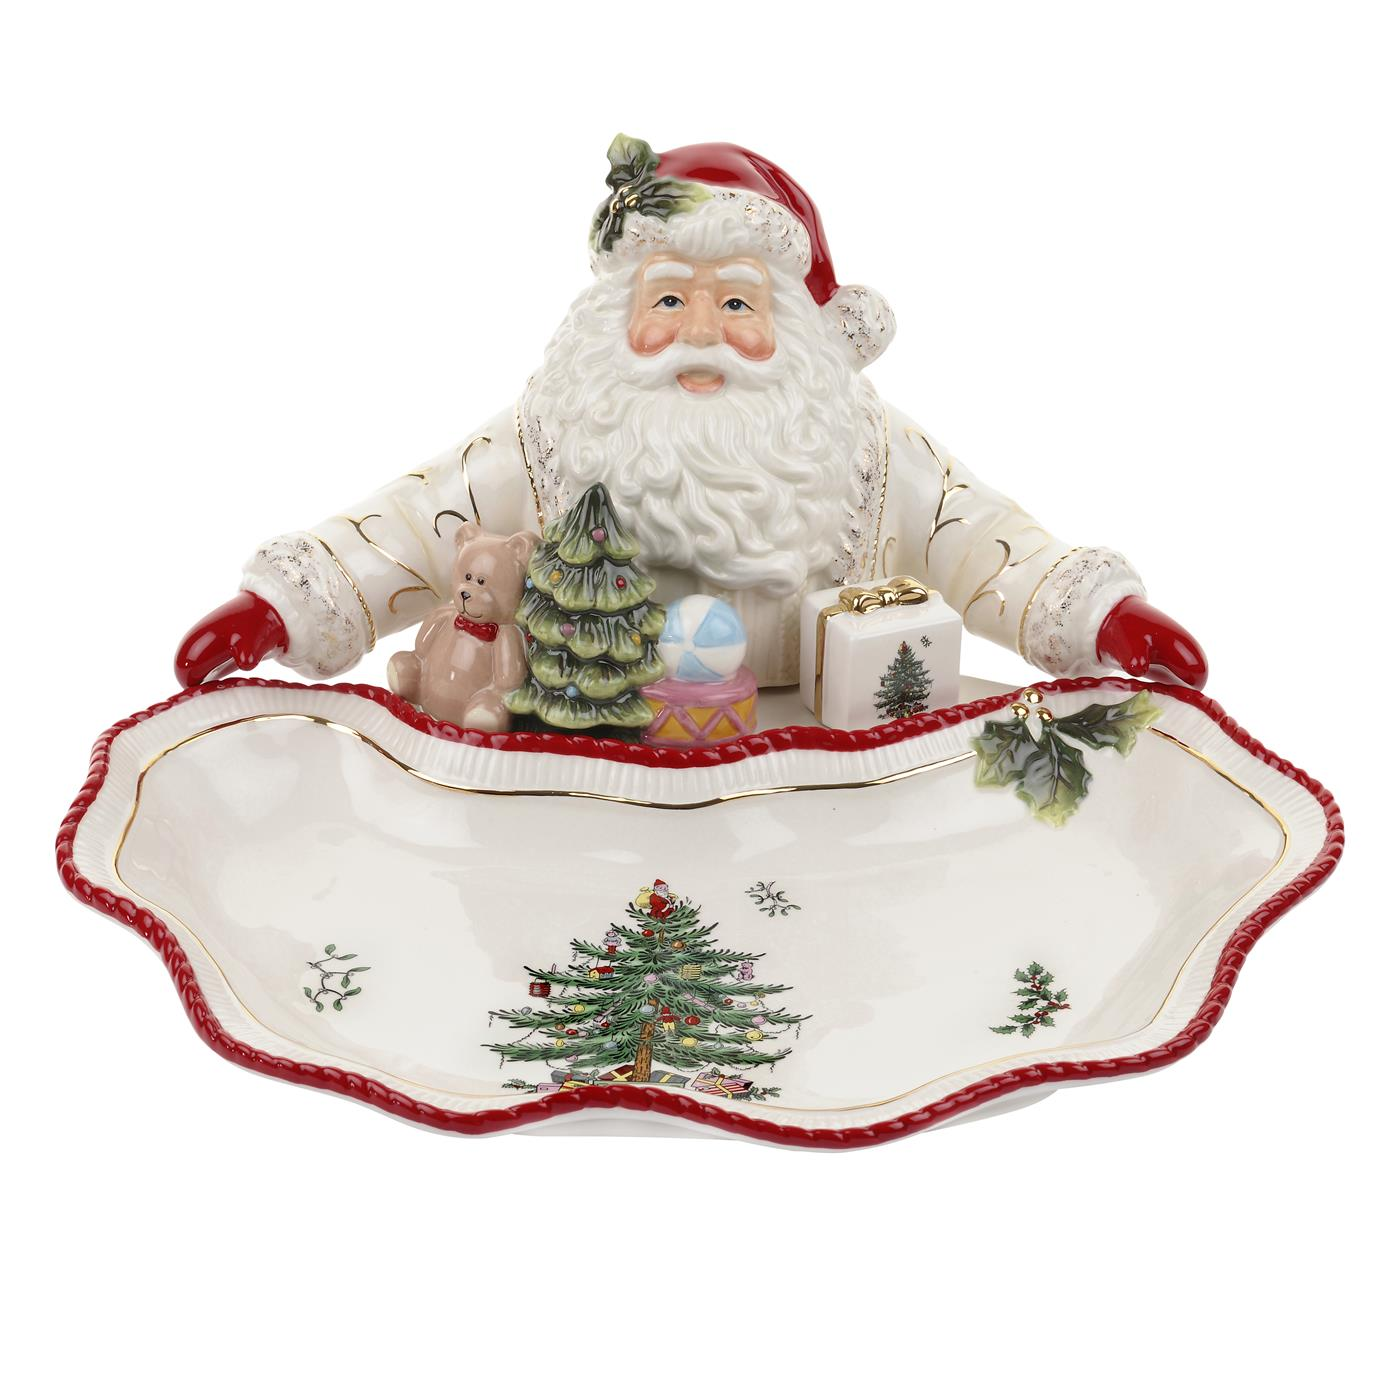 Spode Christmas Tree Gold Figural Collection Santa Dish image number 0